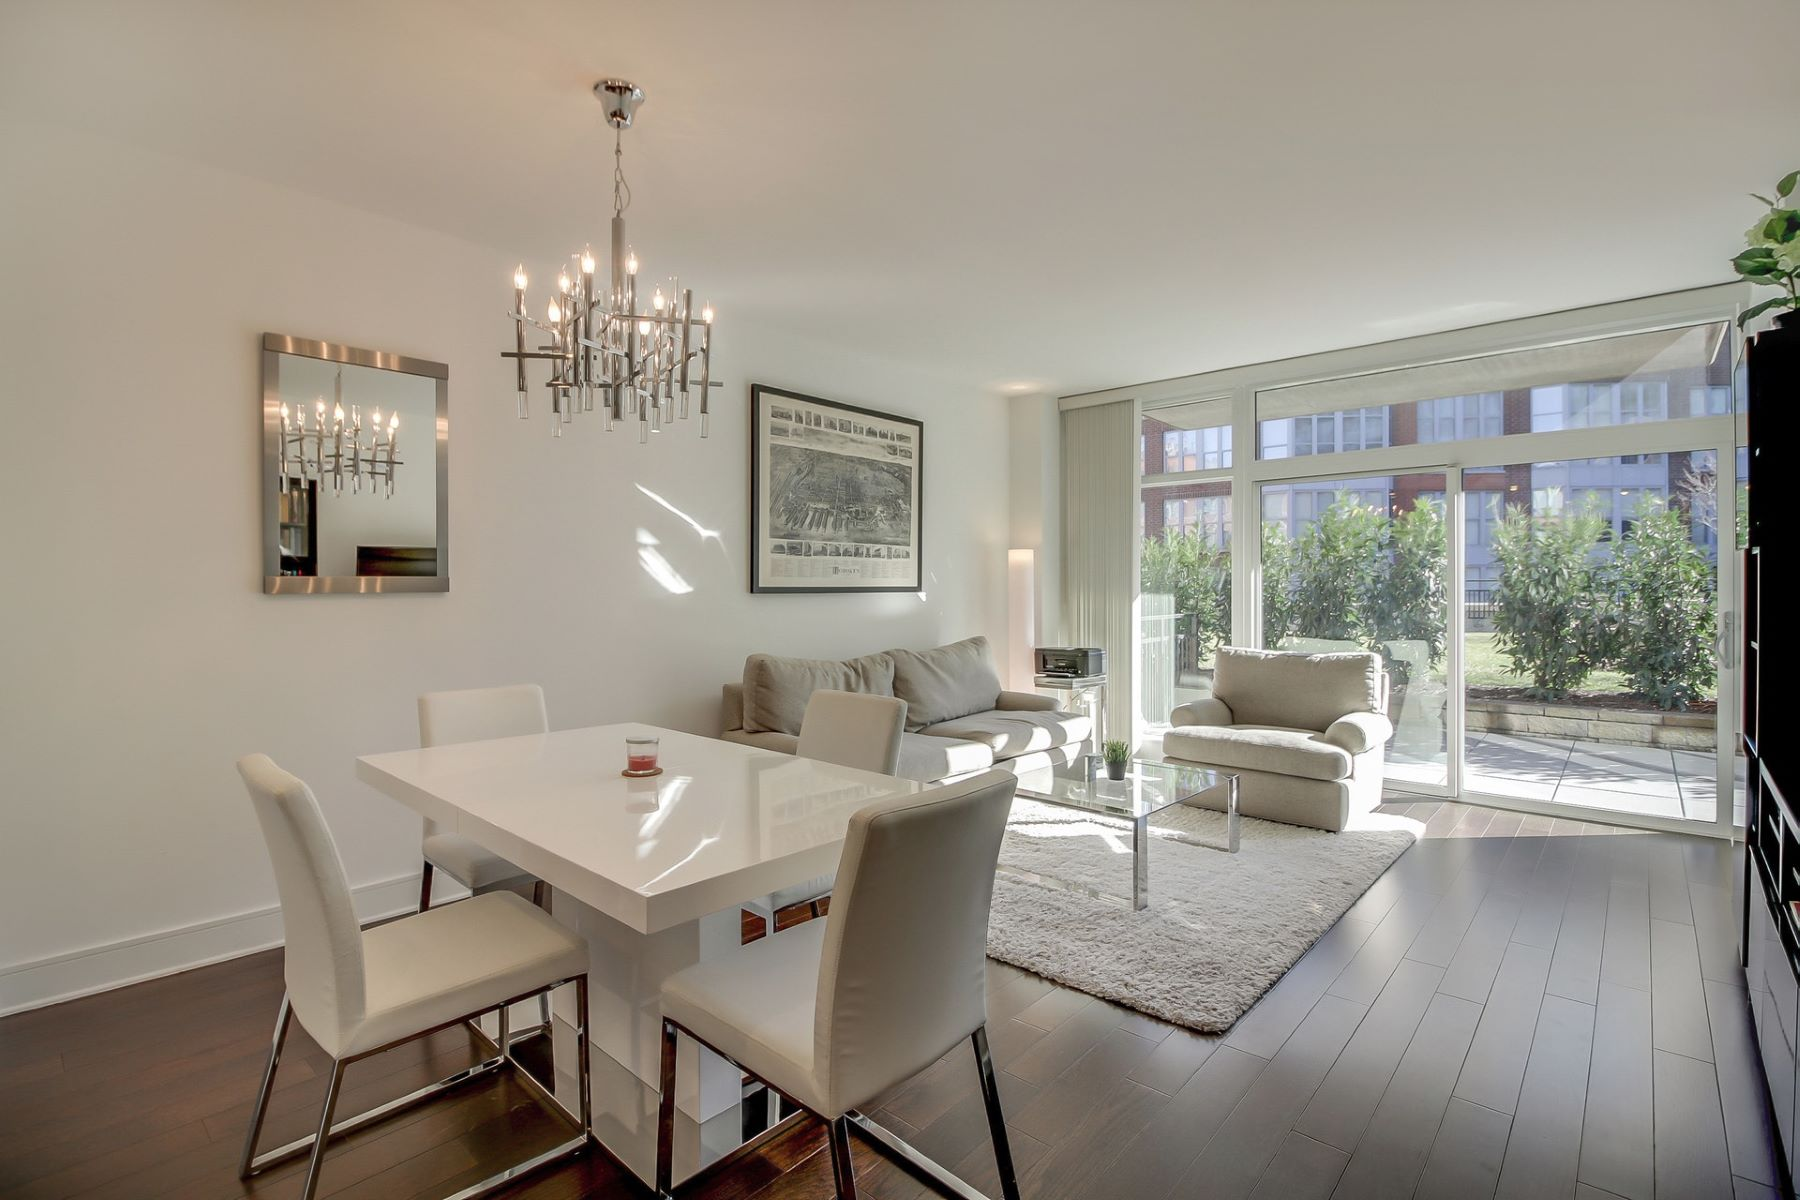 Condominium for Sale at Stunning 1 Bed / 1 Bath located in the luxurious Maxwell Place 1100 Maxwell Lane #418, Hoboken, New Jersey 07030 United States